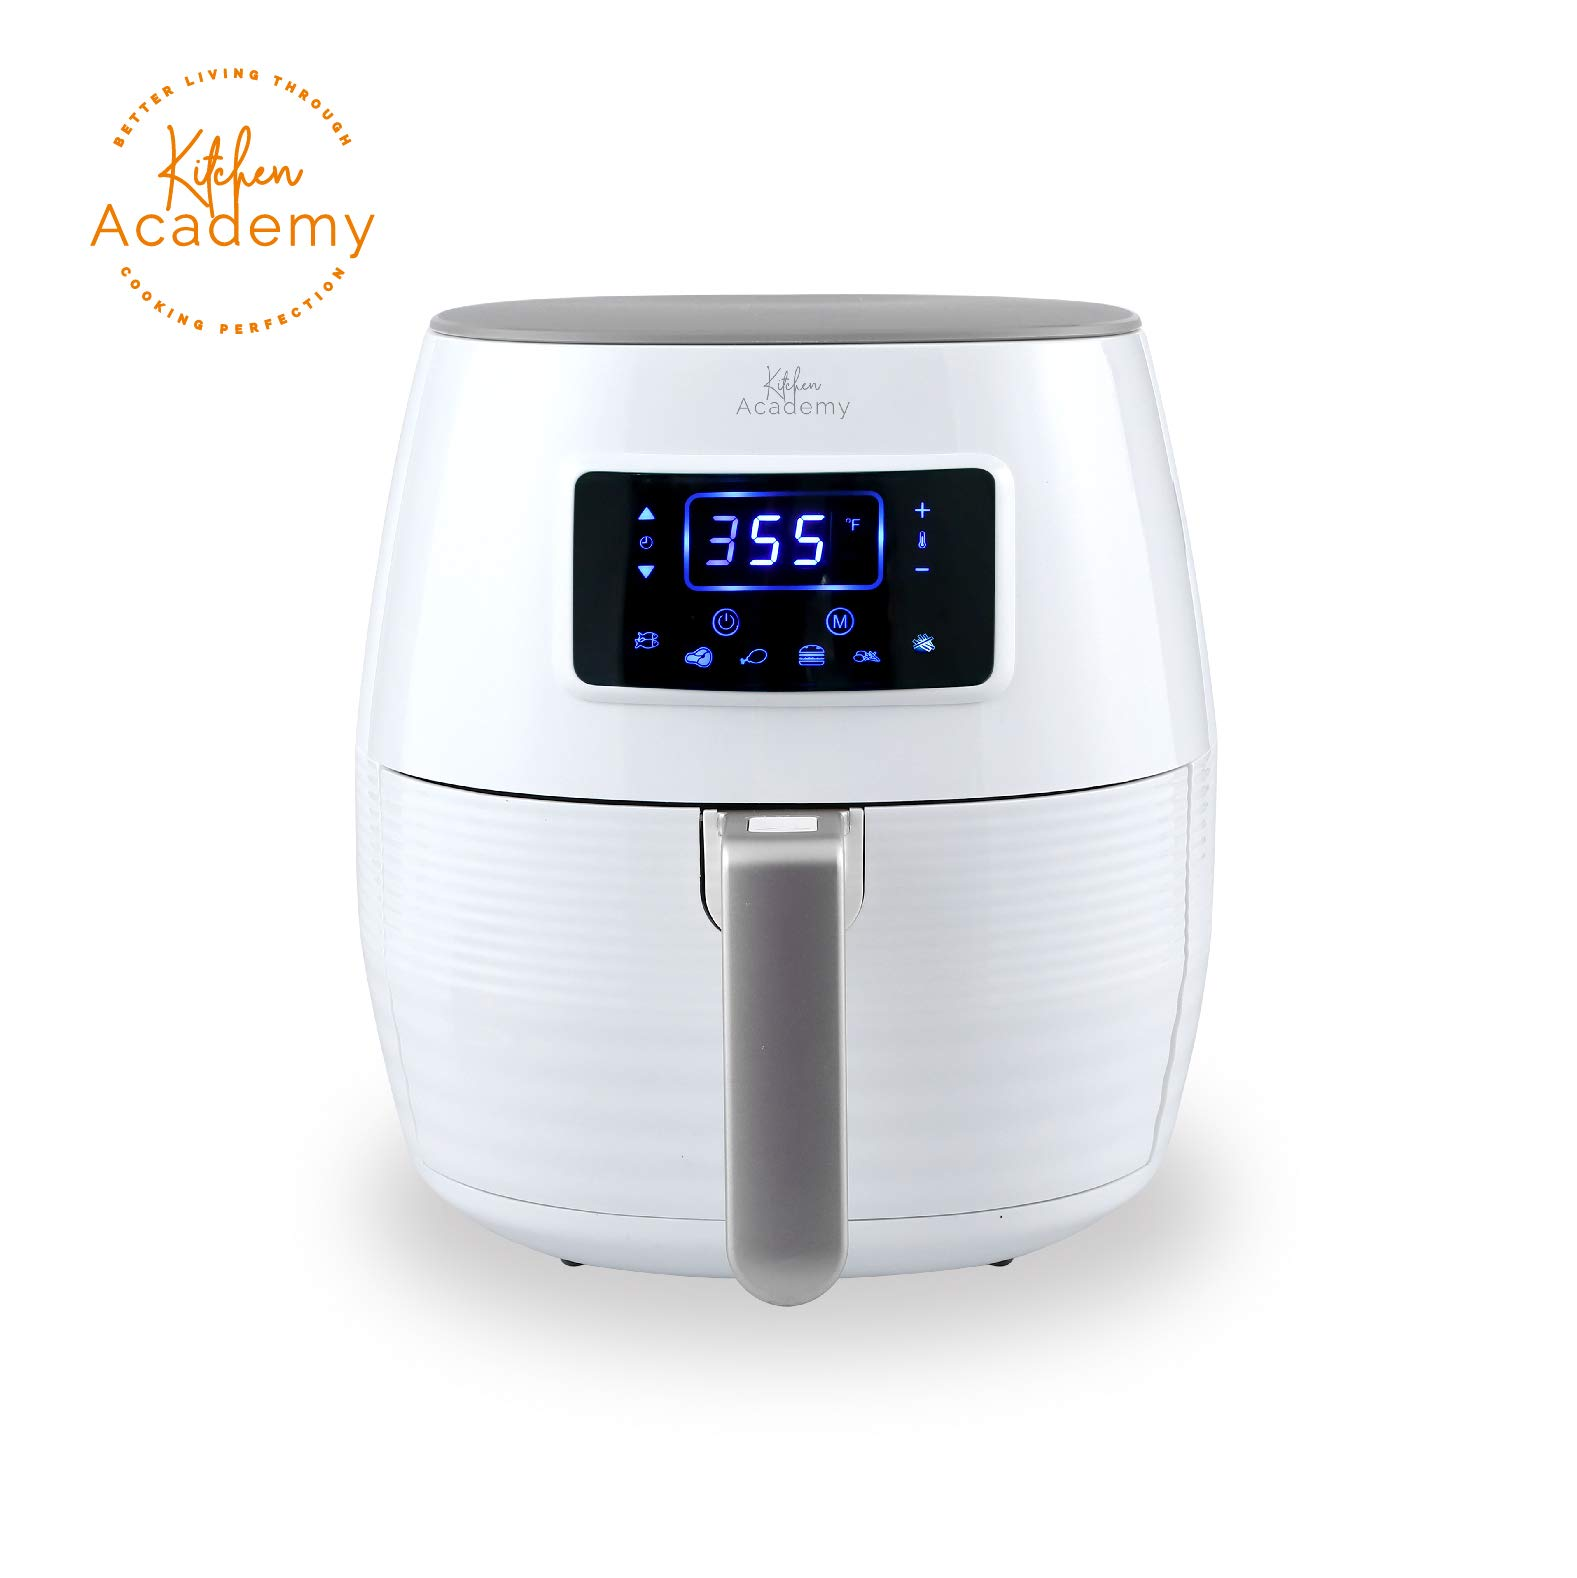 Kitchen Academy Air Fryer (50 Recipes), 5.8 Qt Electric Hot Air Fryers XL Oven Oilless Cooker, 7 Cooking Preset, LED Digital Touchscreen,Nonstick Basket,1 - Year Warranty,ETL/FDA Listed,1700W - White by Kitchen Academy